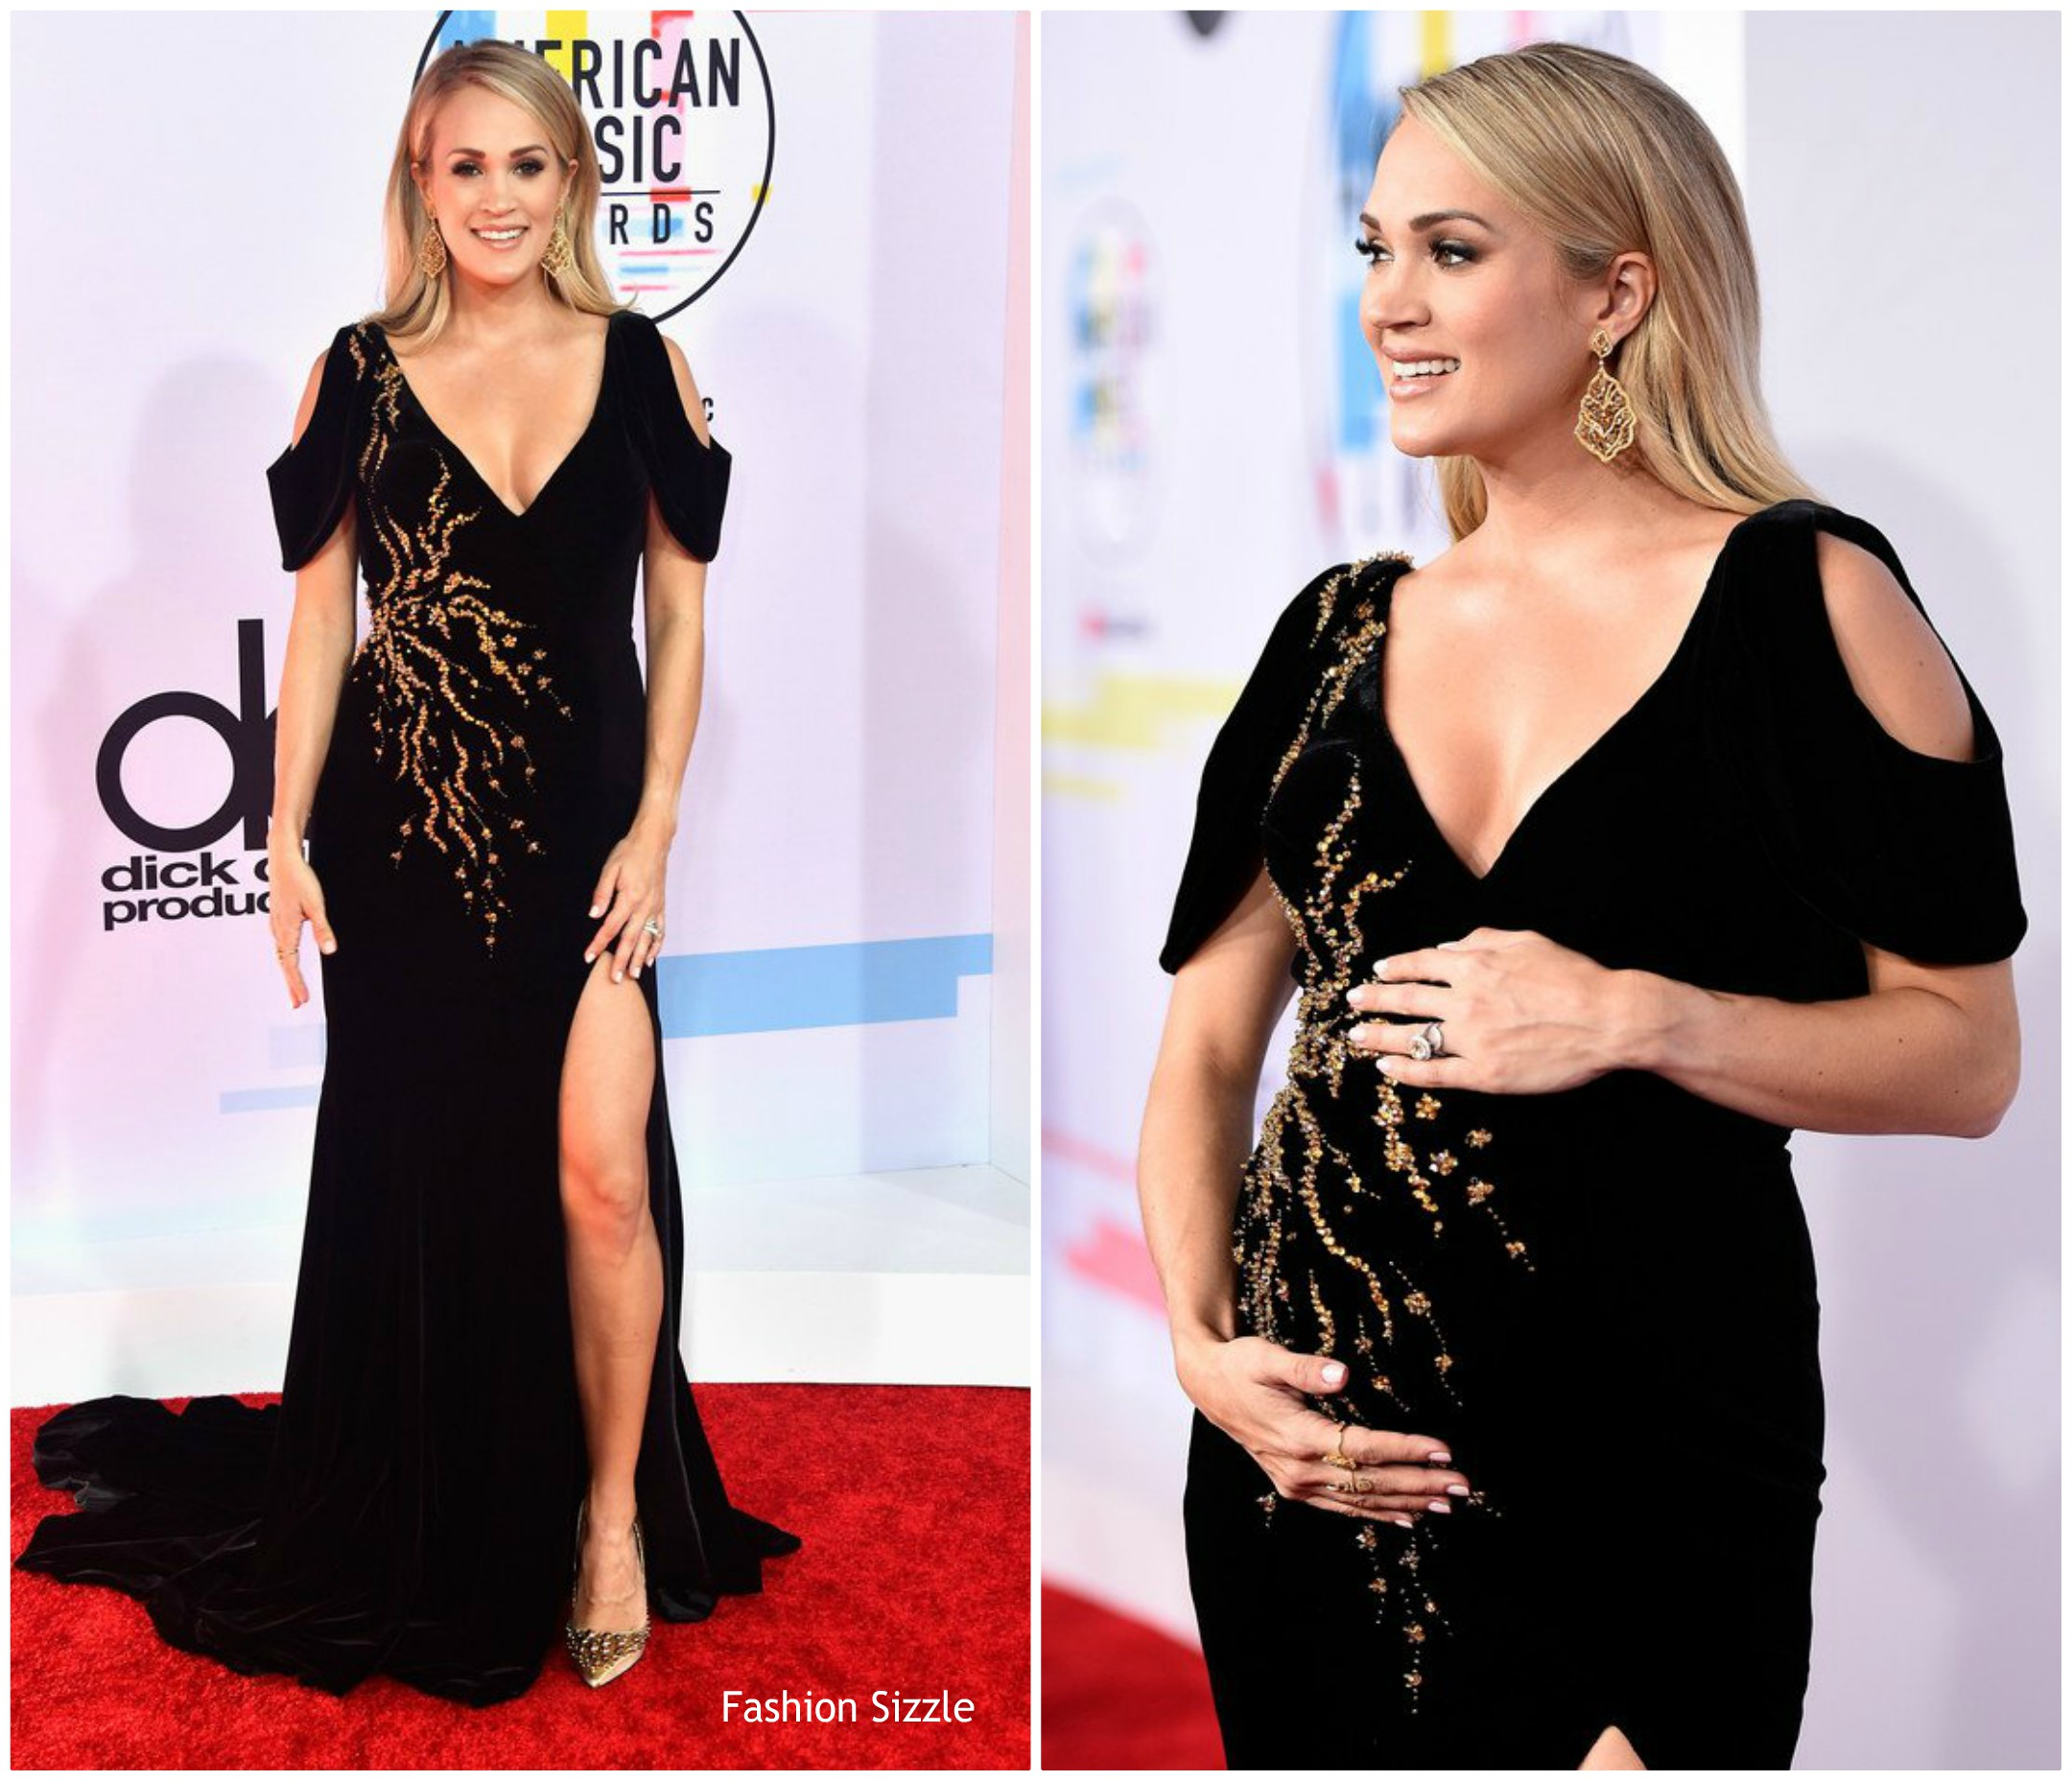 carrie-underwood-in-steven-khalil-2018-american-music-awards